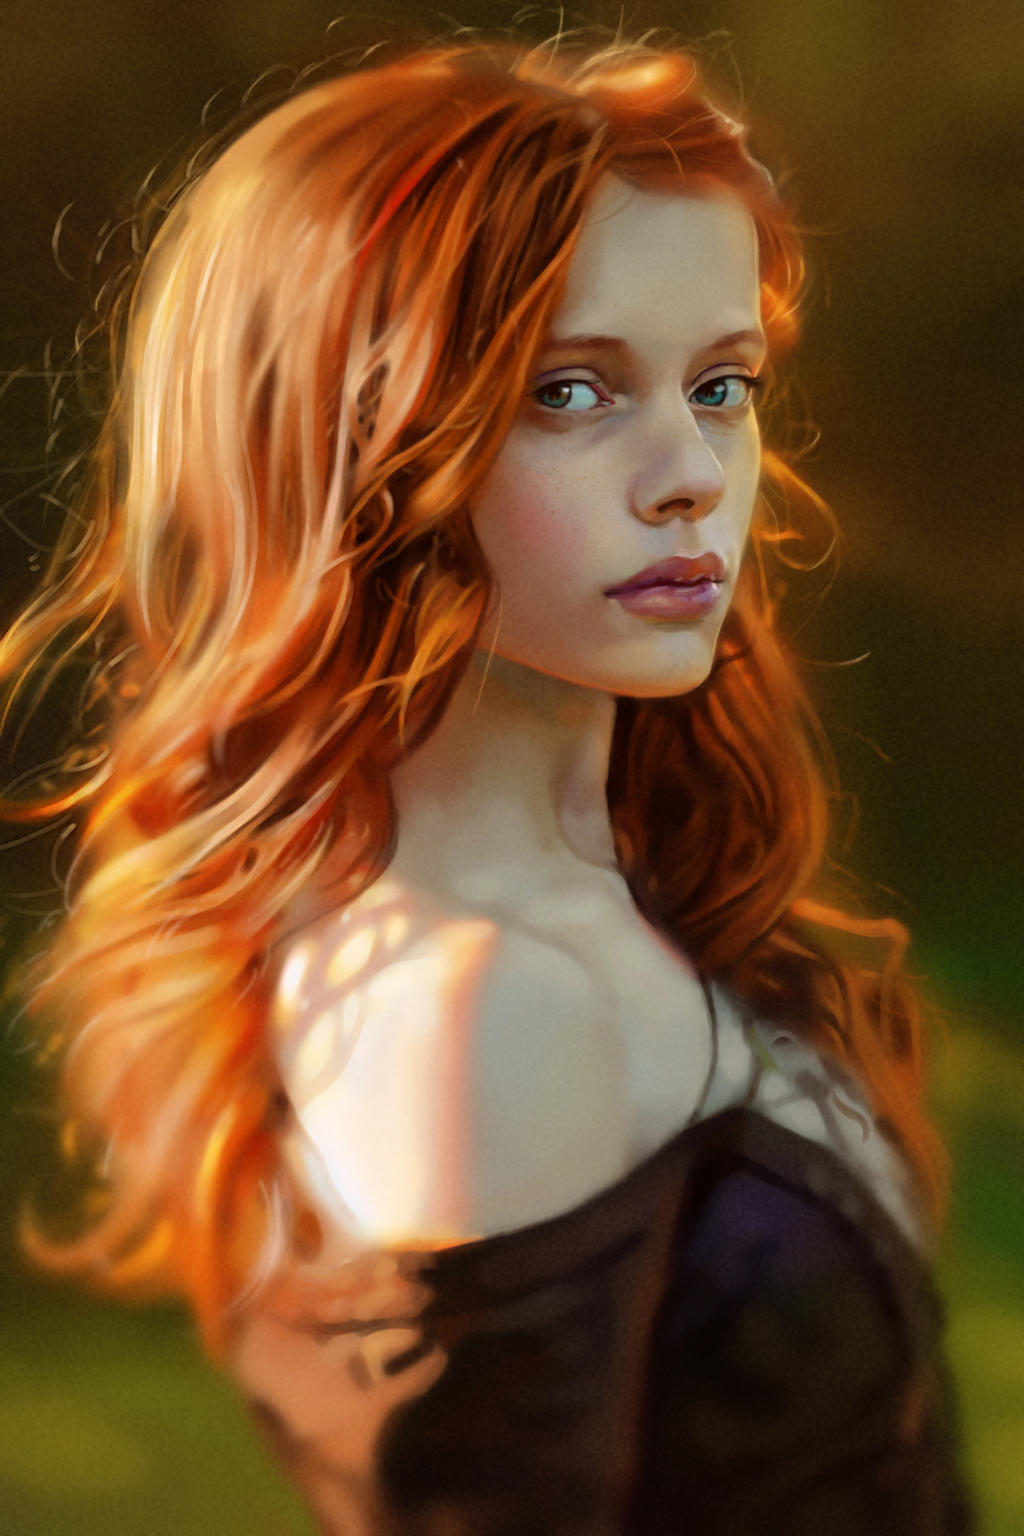 https://img00.deviantart.net/e430/i/2015/266/4/d/ginger_by_deathstars69-d9am80y.jpg